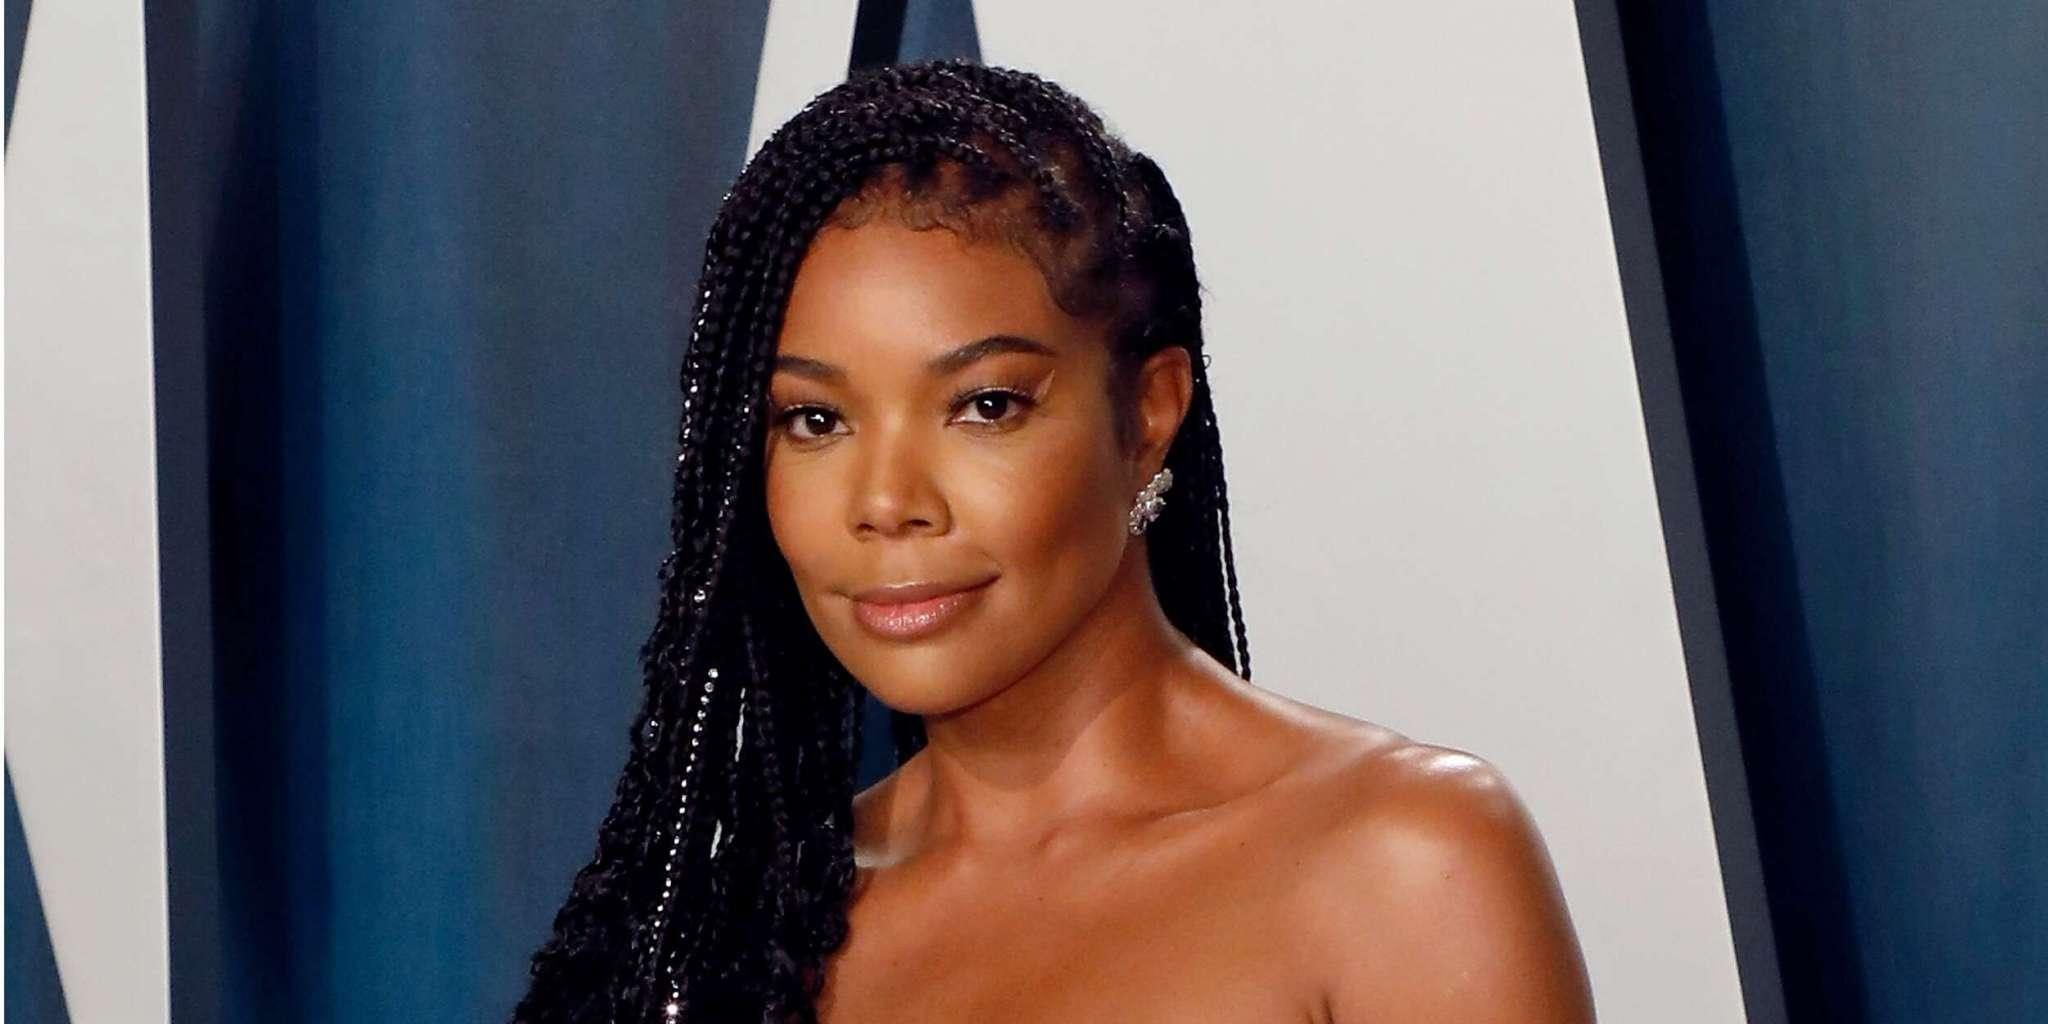 Gabrielle Union Makes Fans Happy With This Video